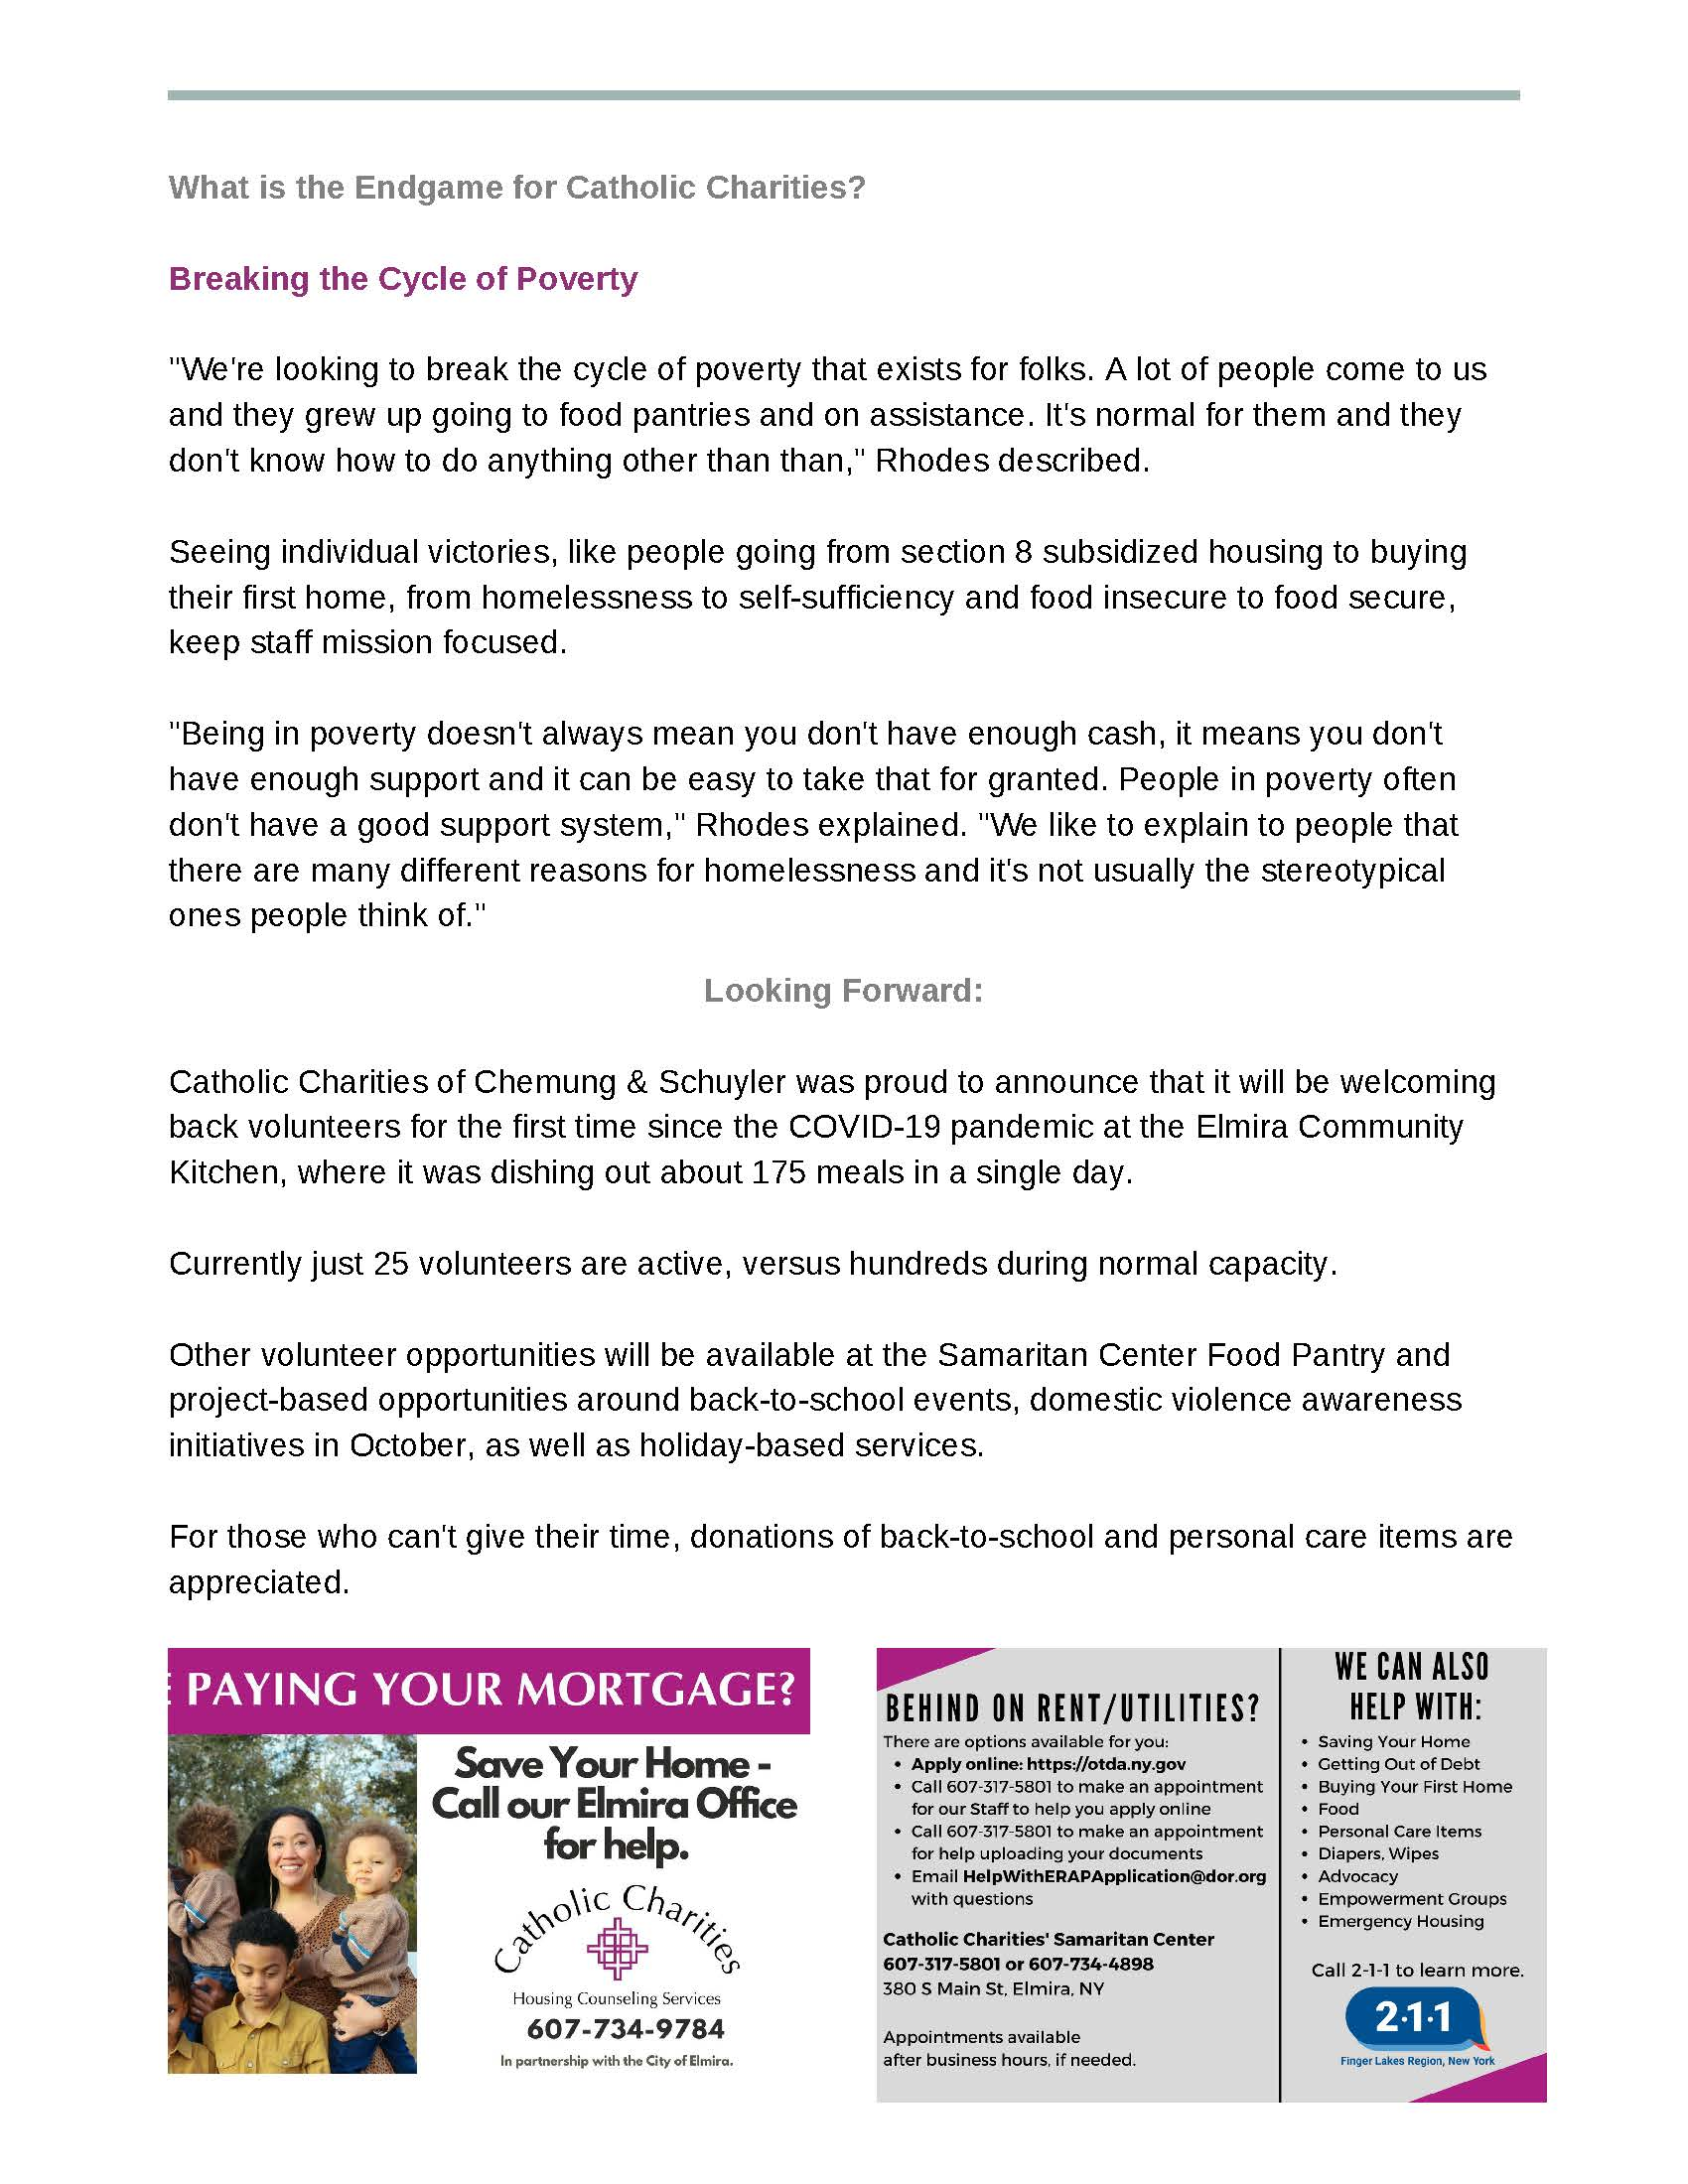 """CCE Steuben Profile 1 Page 3 - Member Profile"""" Catholic Charities Chemung & Schuyler"""